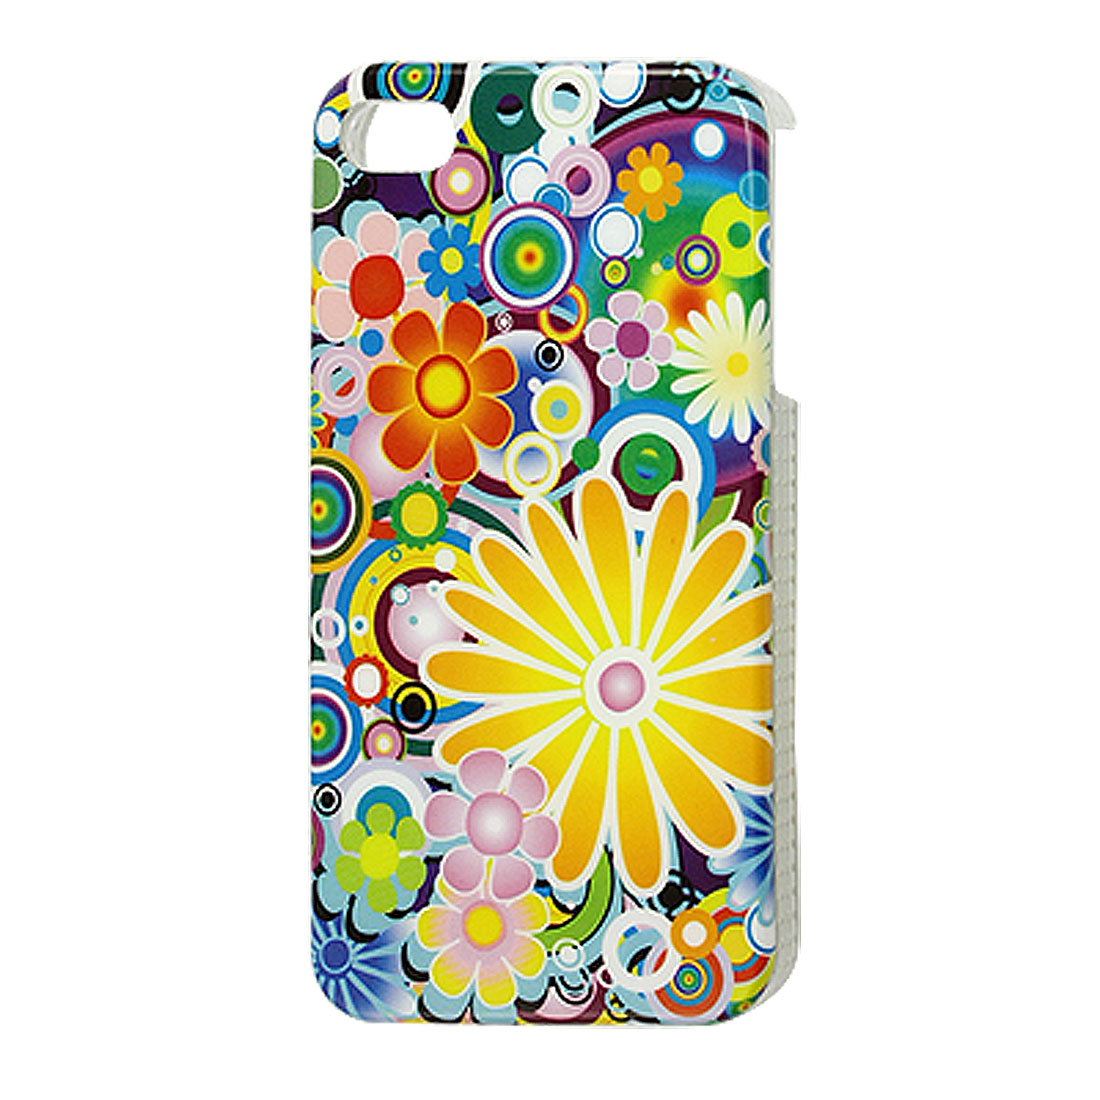 Multicolor Flowers Pattern IMD Hard Case Cover Shell for iPhone 4 4G 4S